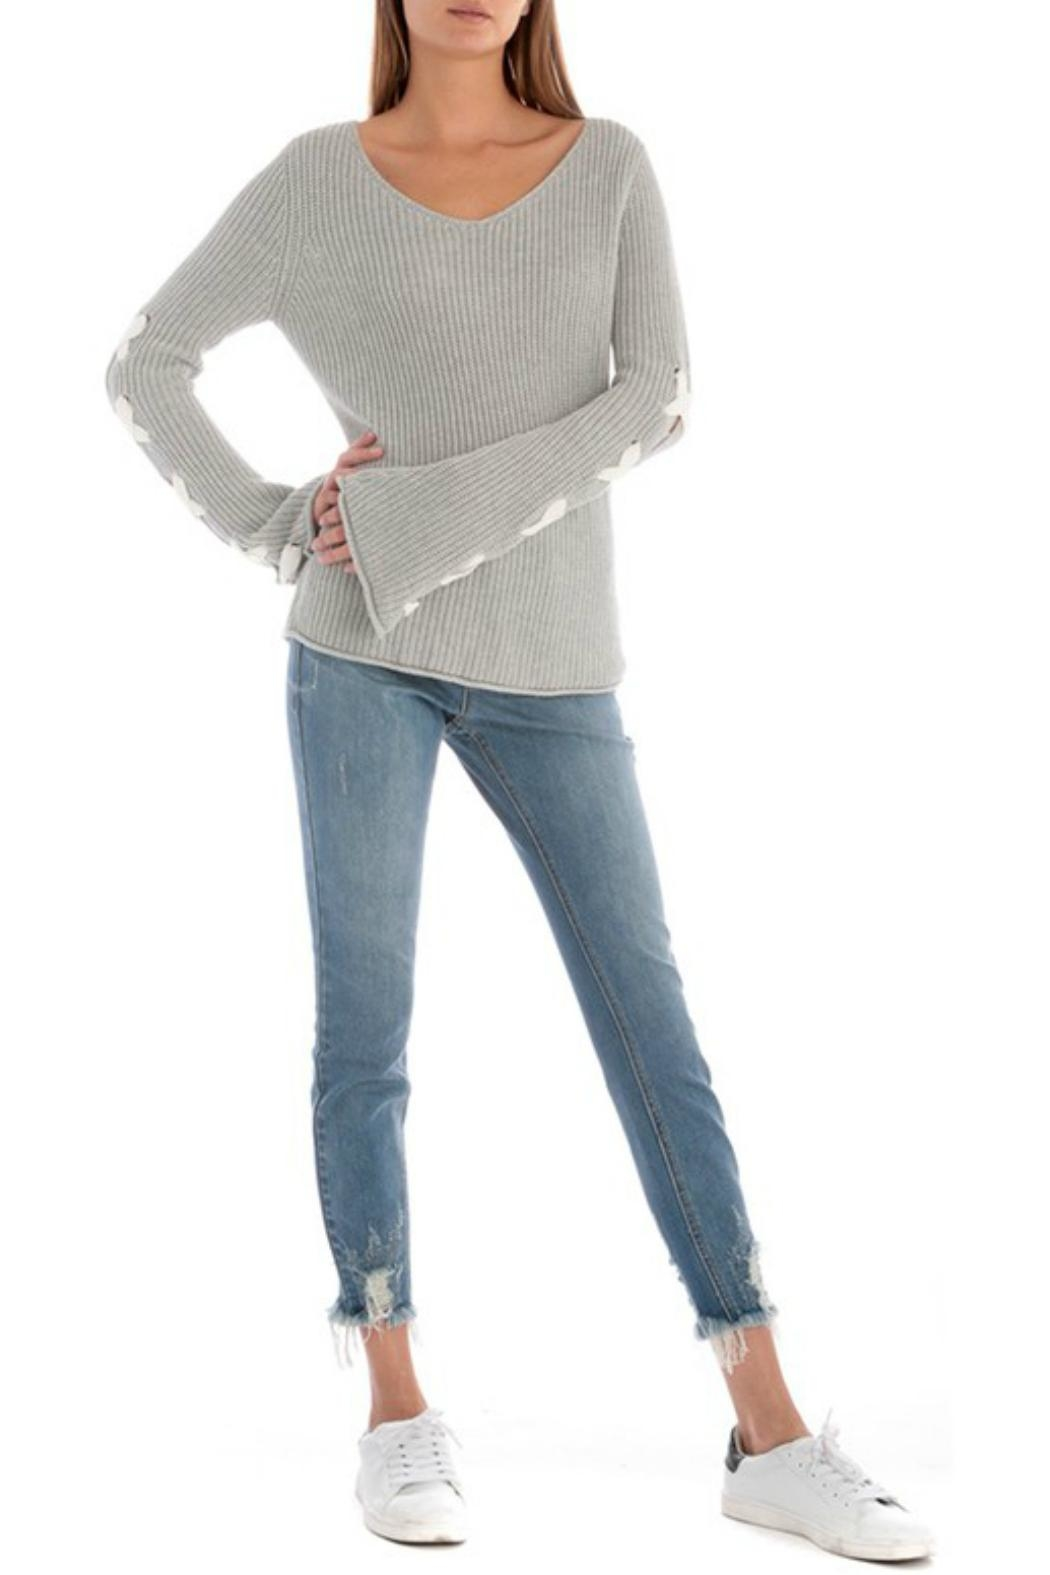 Skies Are Blue Lace Up Sleeve Sweater - Main Image